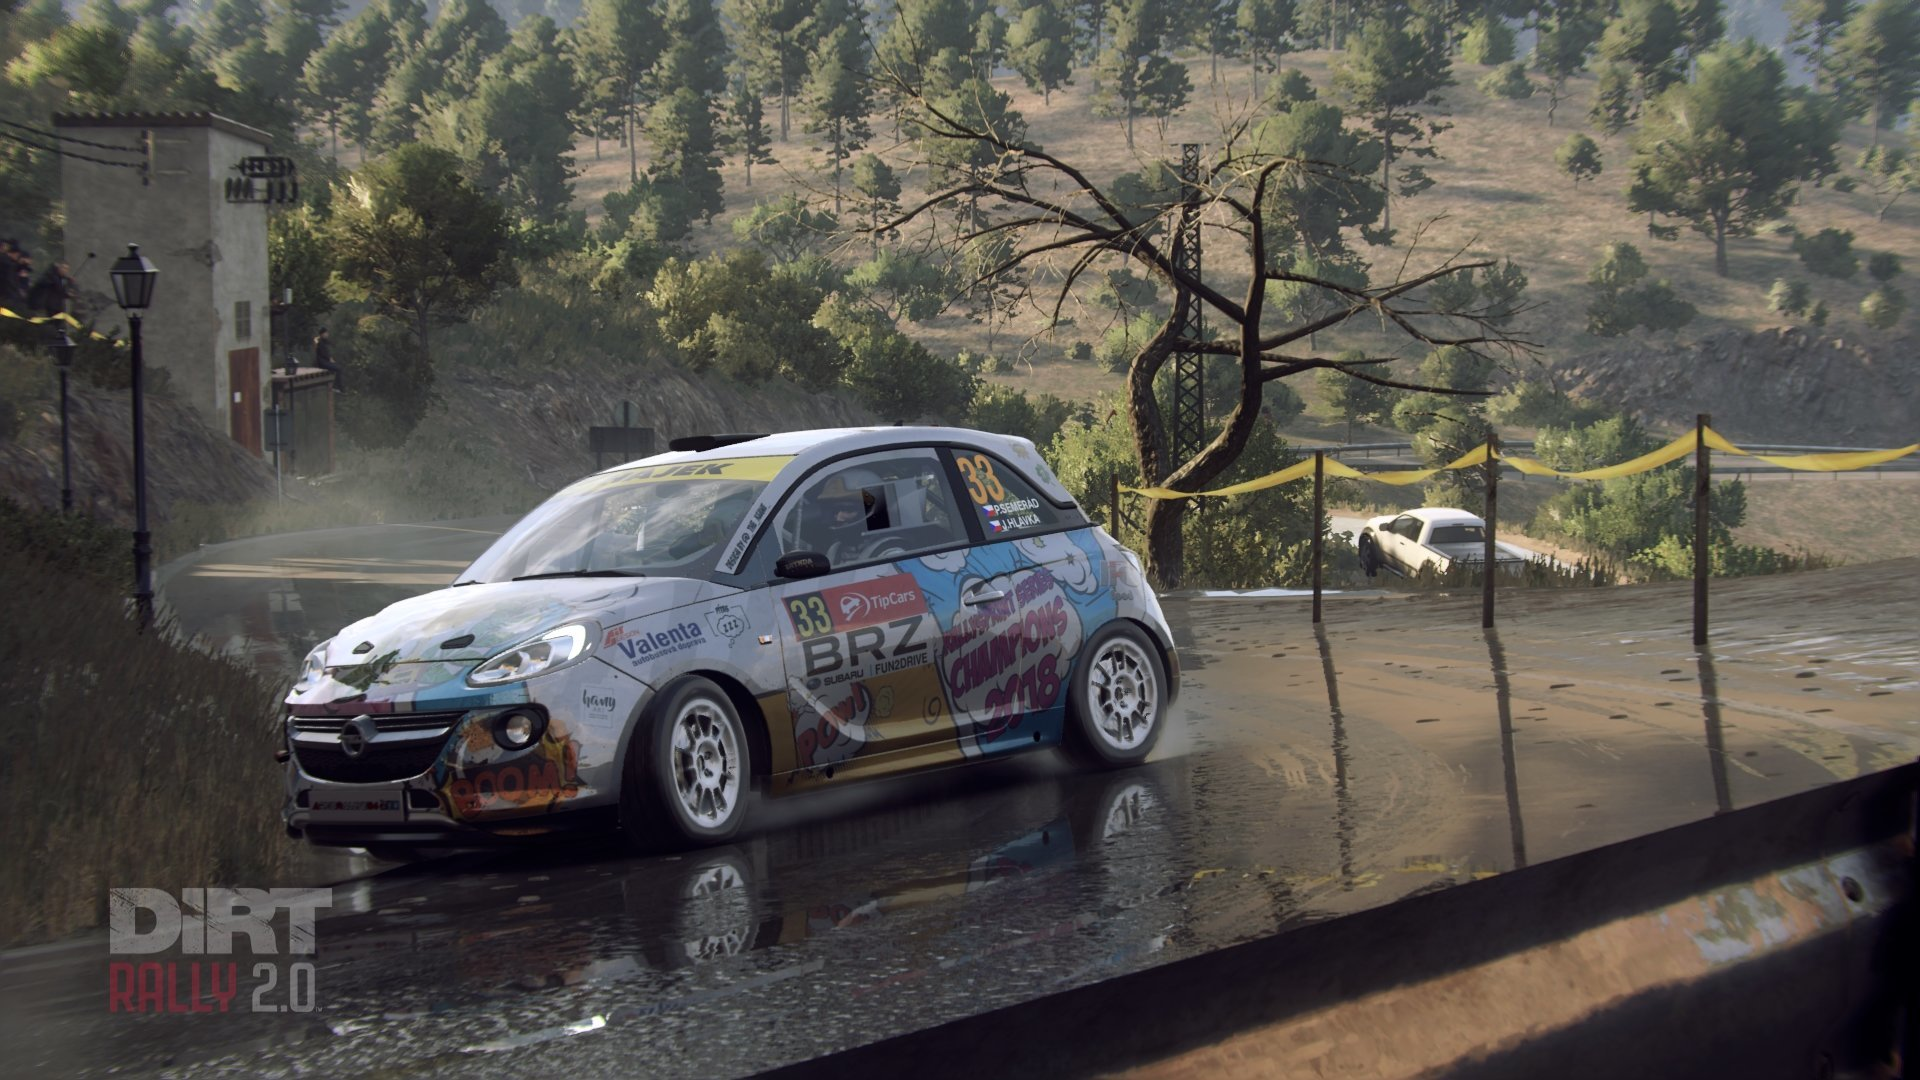 1588012941-dirtrally2-21-04-2020-17-00-5